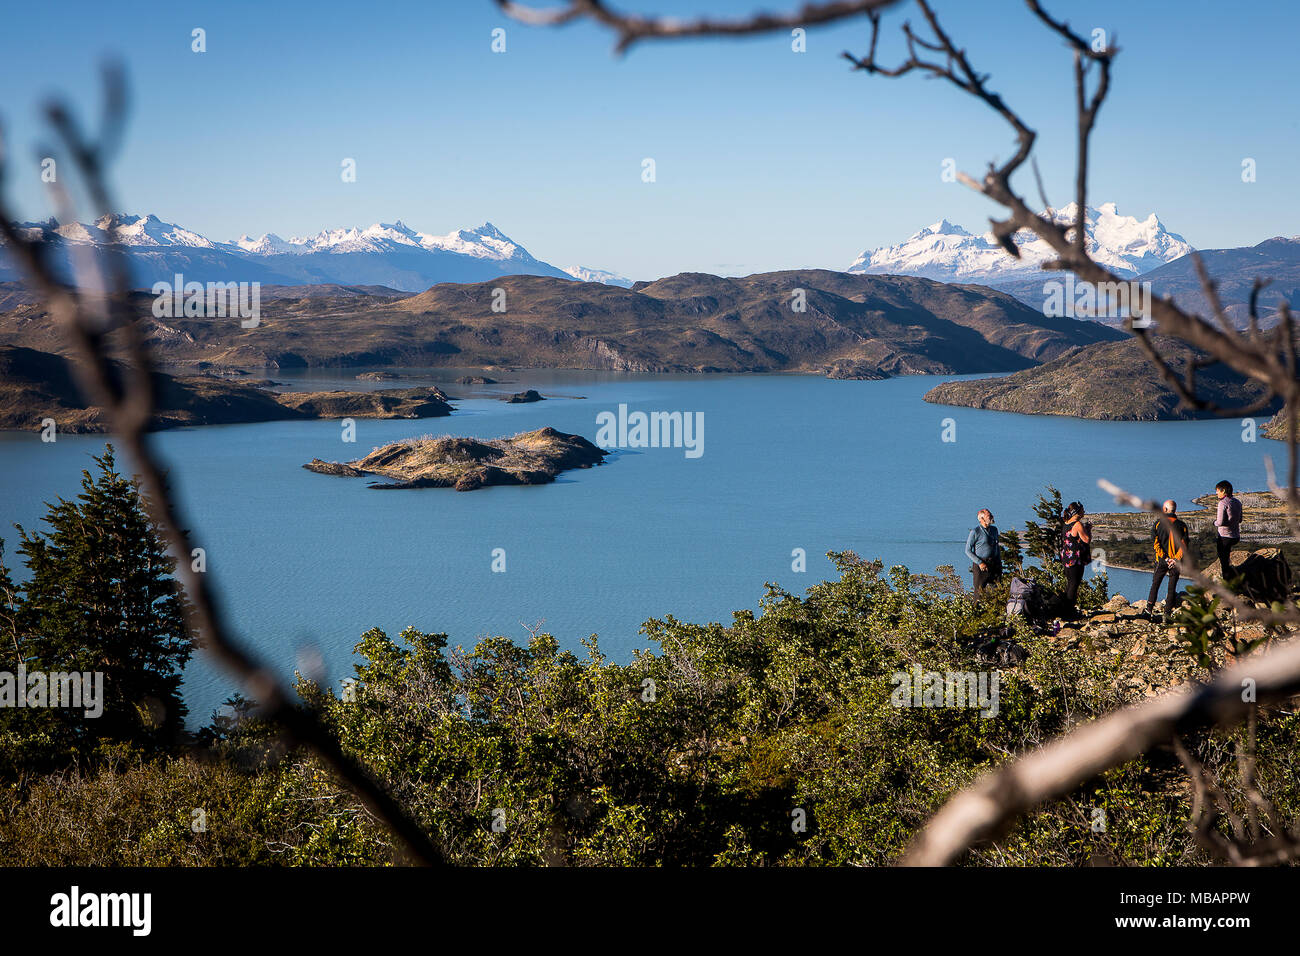 Lago Nordenskjöld and Hikers resting between Cuernos refuge and Campamento Italiano, Torres del Paine national park, Patagonia, Chile - Stock Image